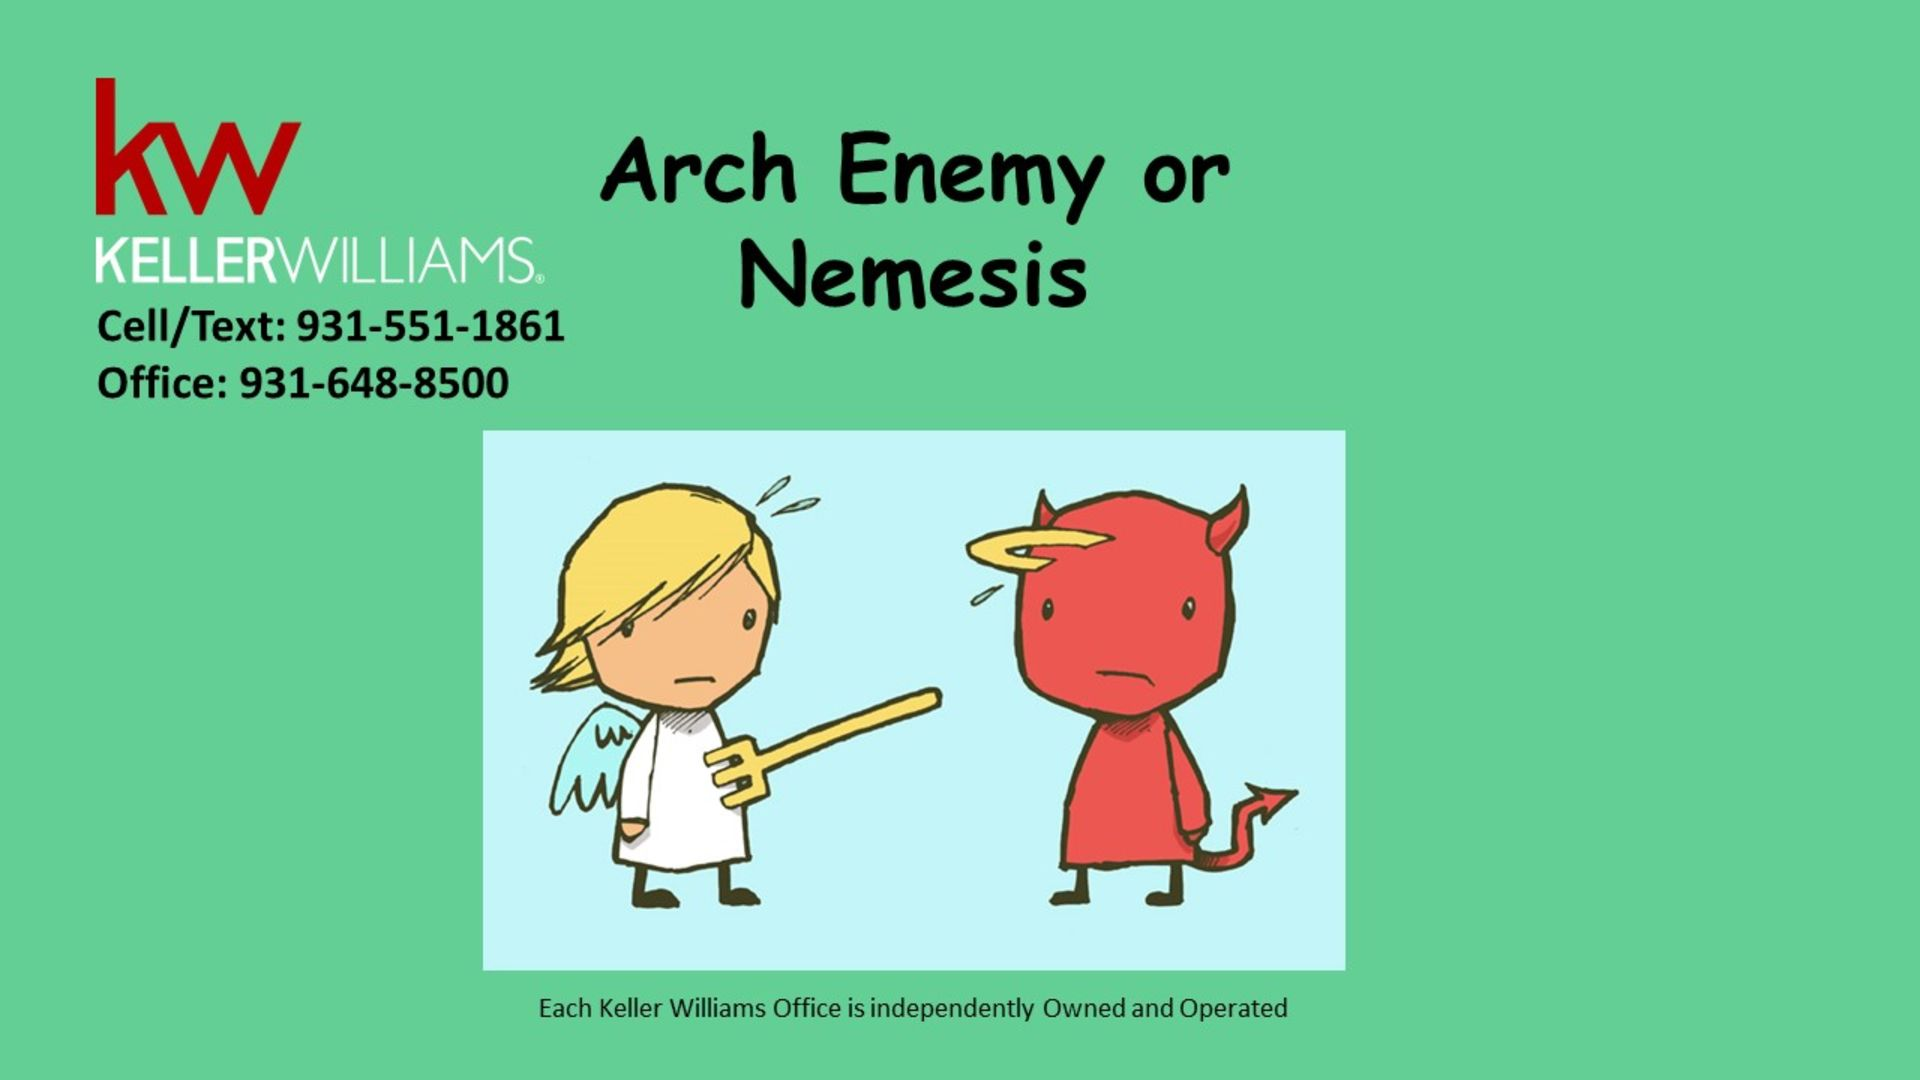 ​Arch Enemy or Nemesis